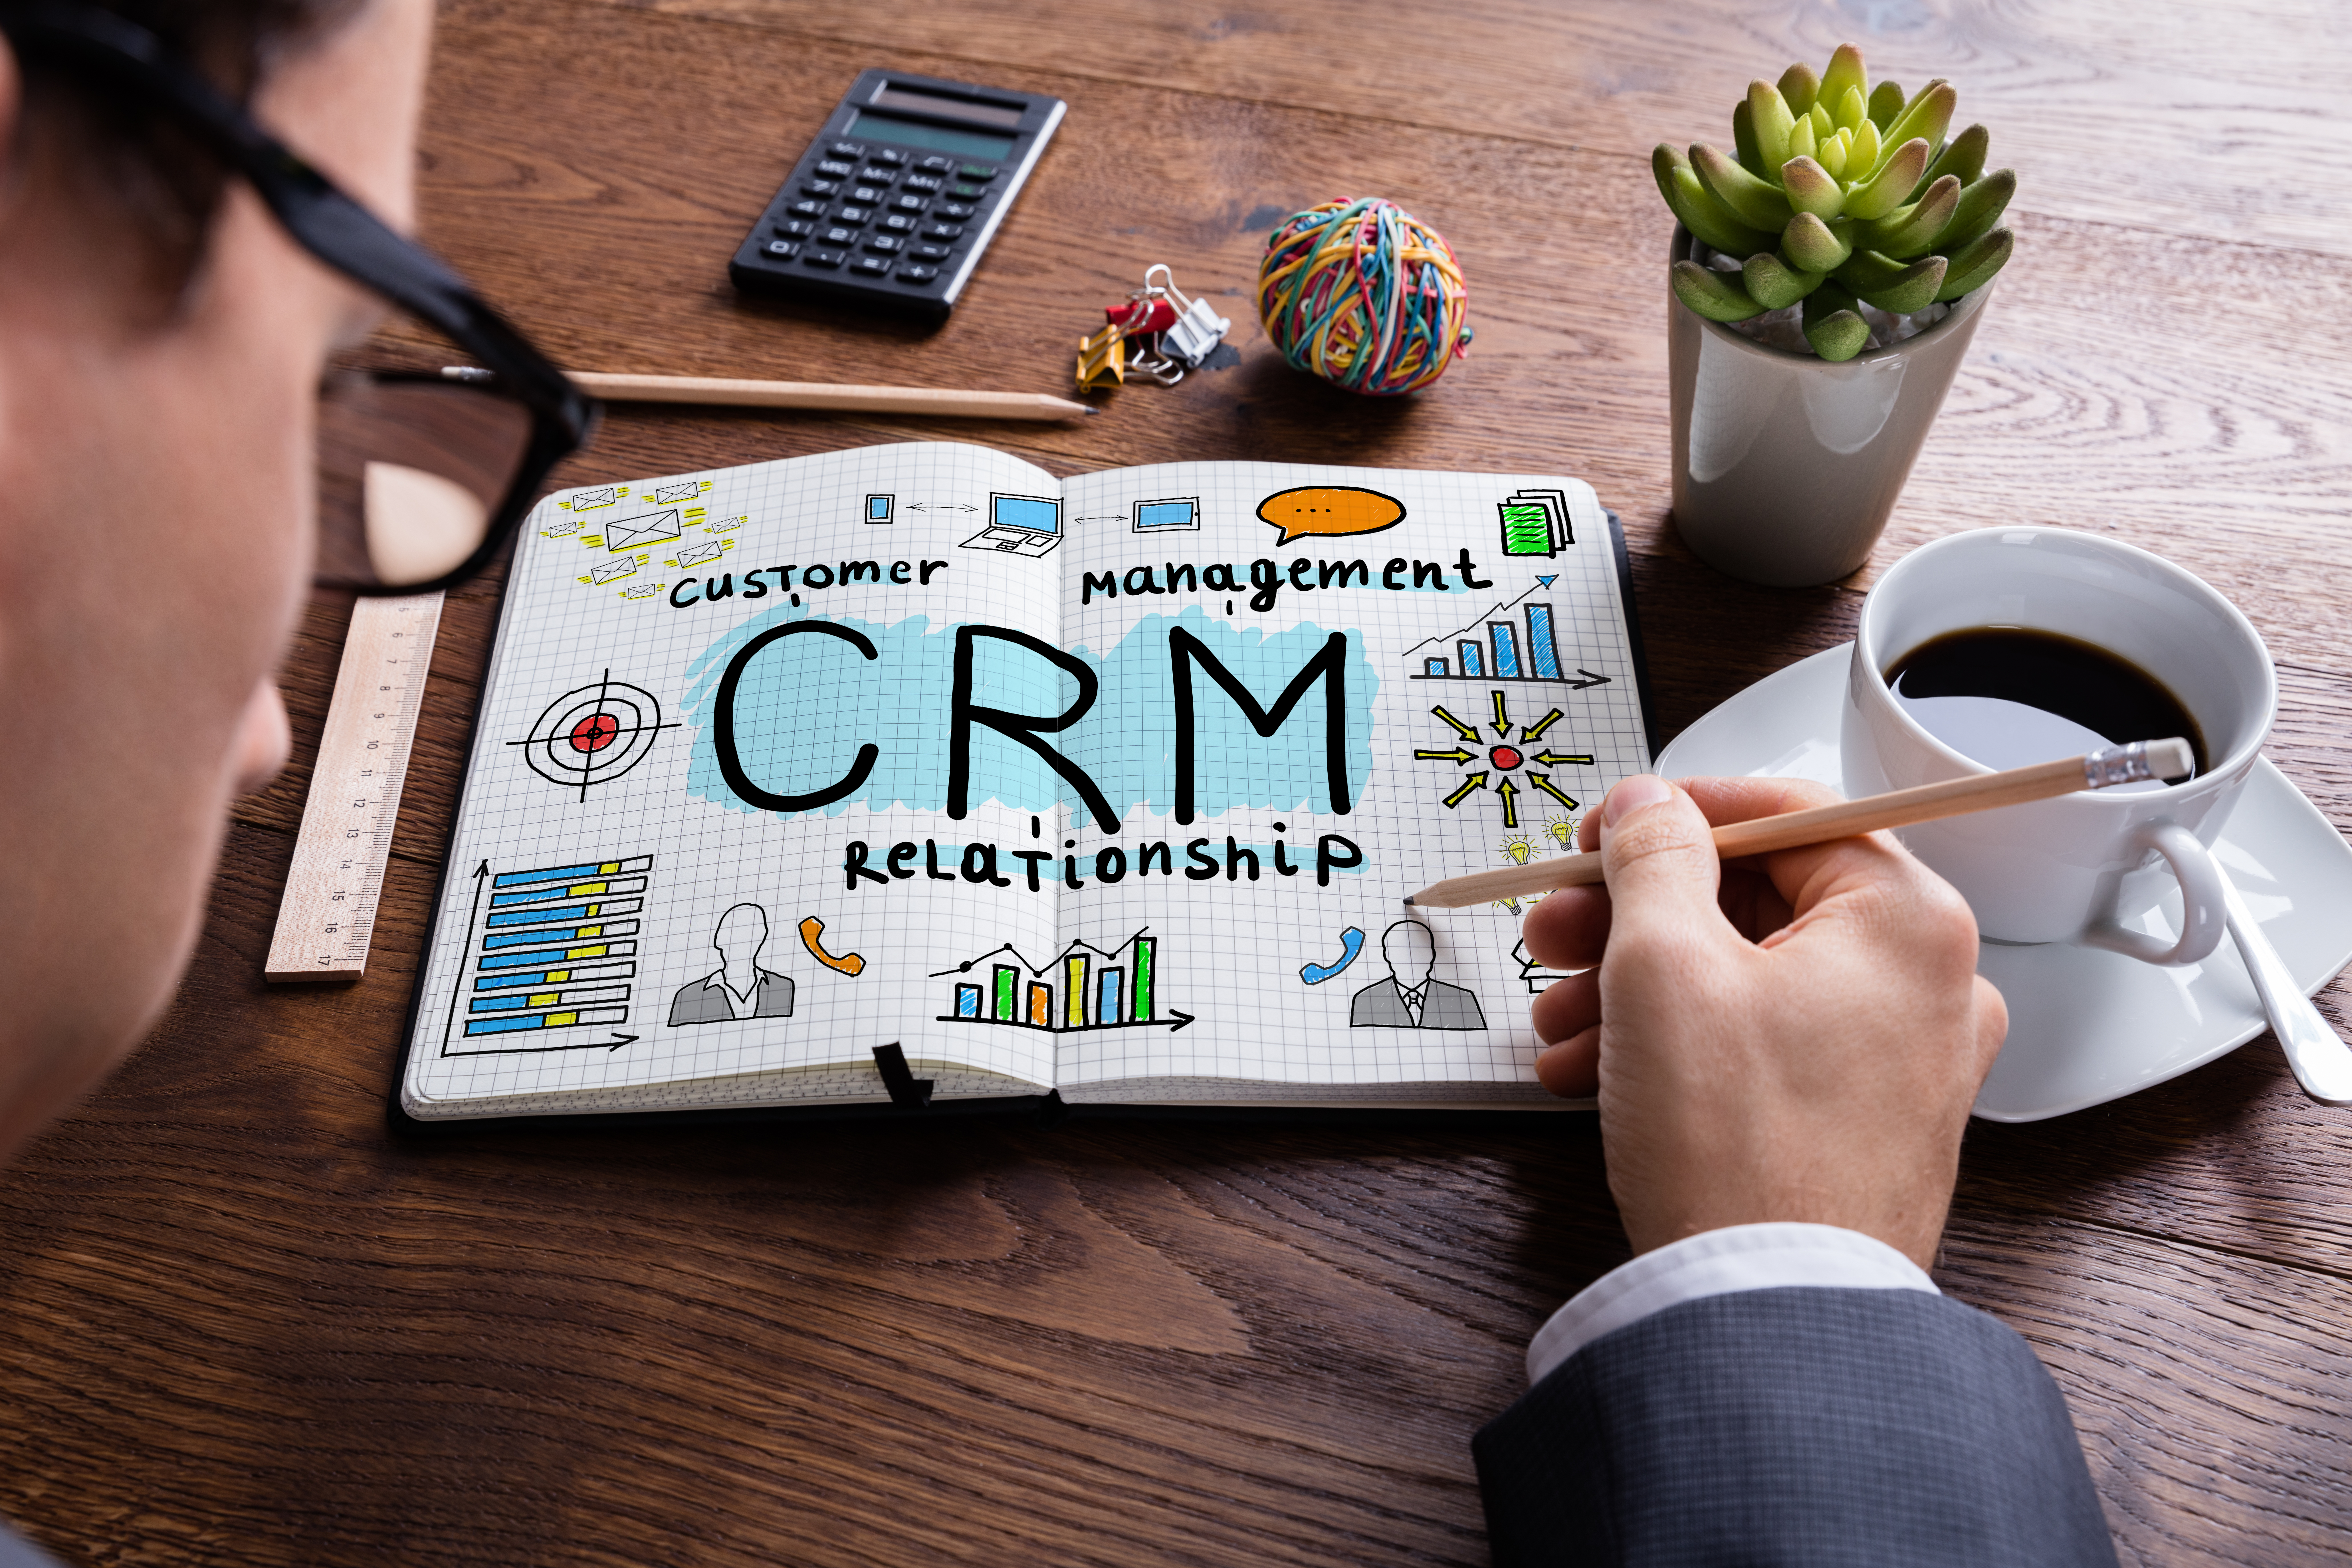 5 Factors for a Successfull CRM Implementation